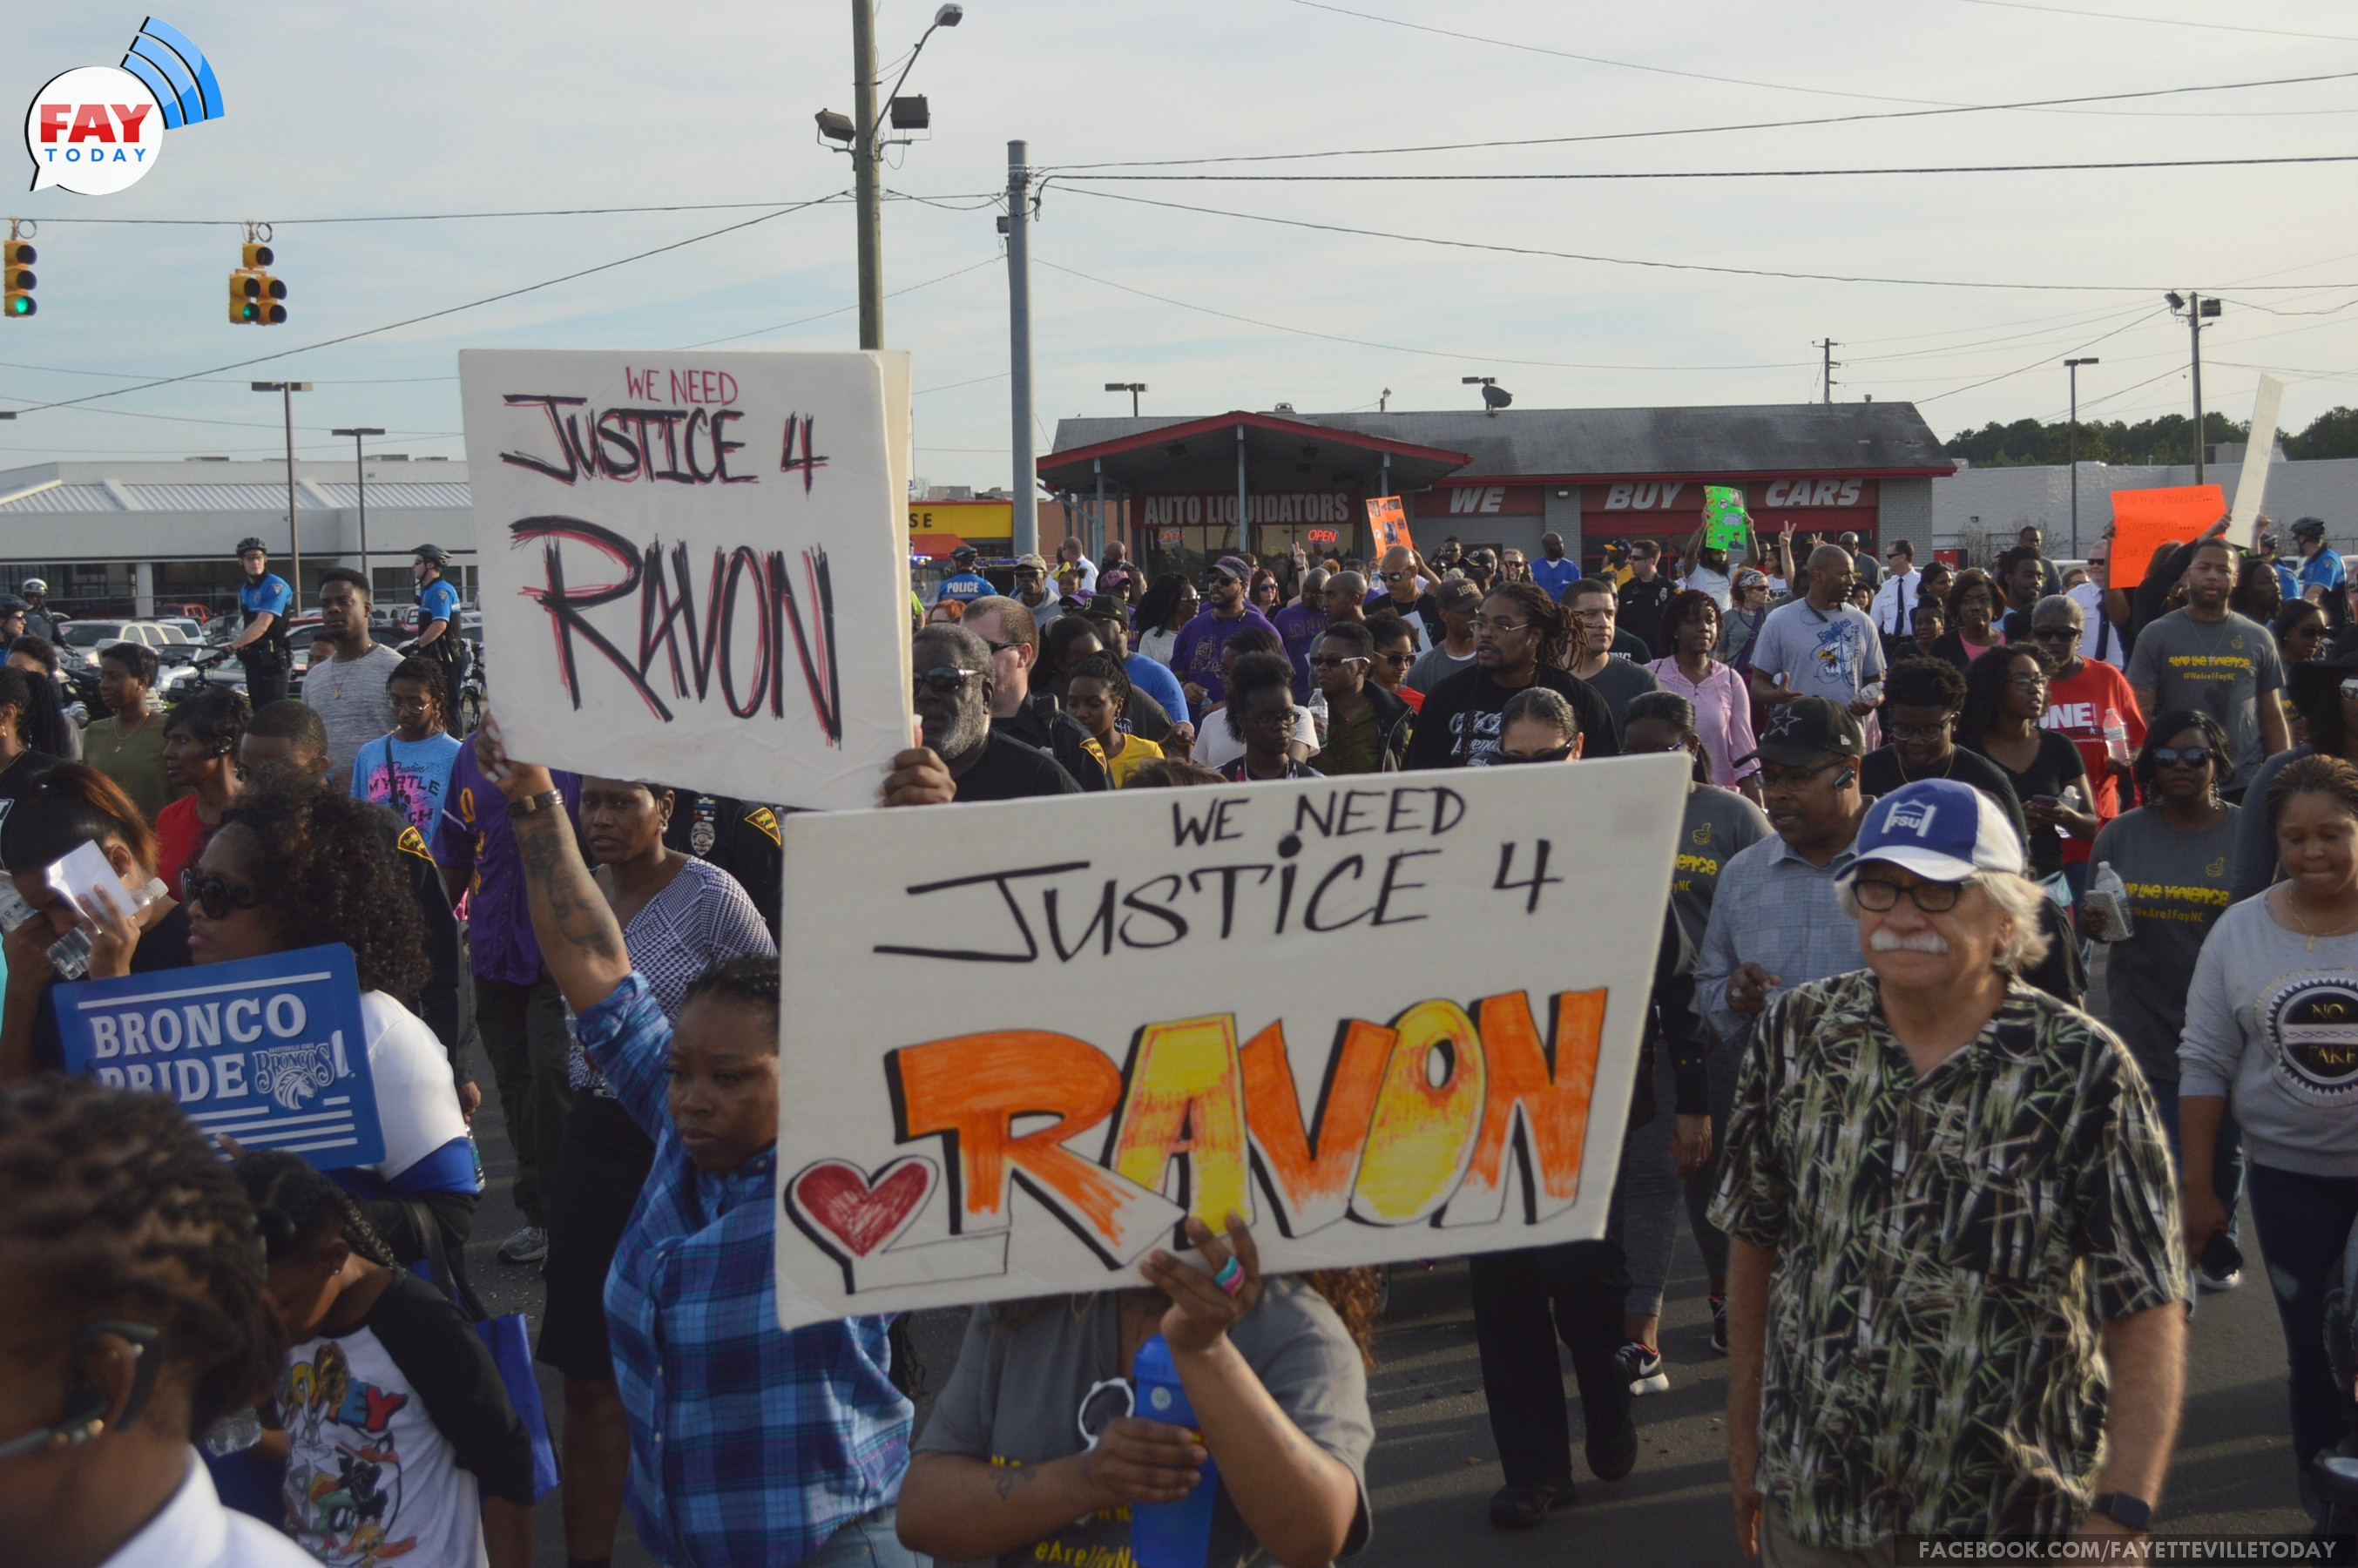 PHOTOS: 2015 Unity March in Fayetteville, NC – FayToday